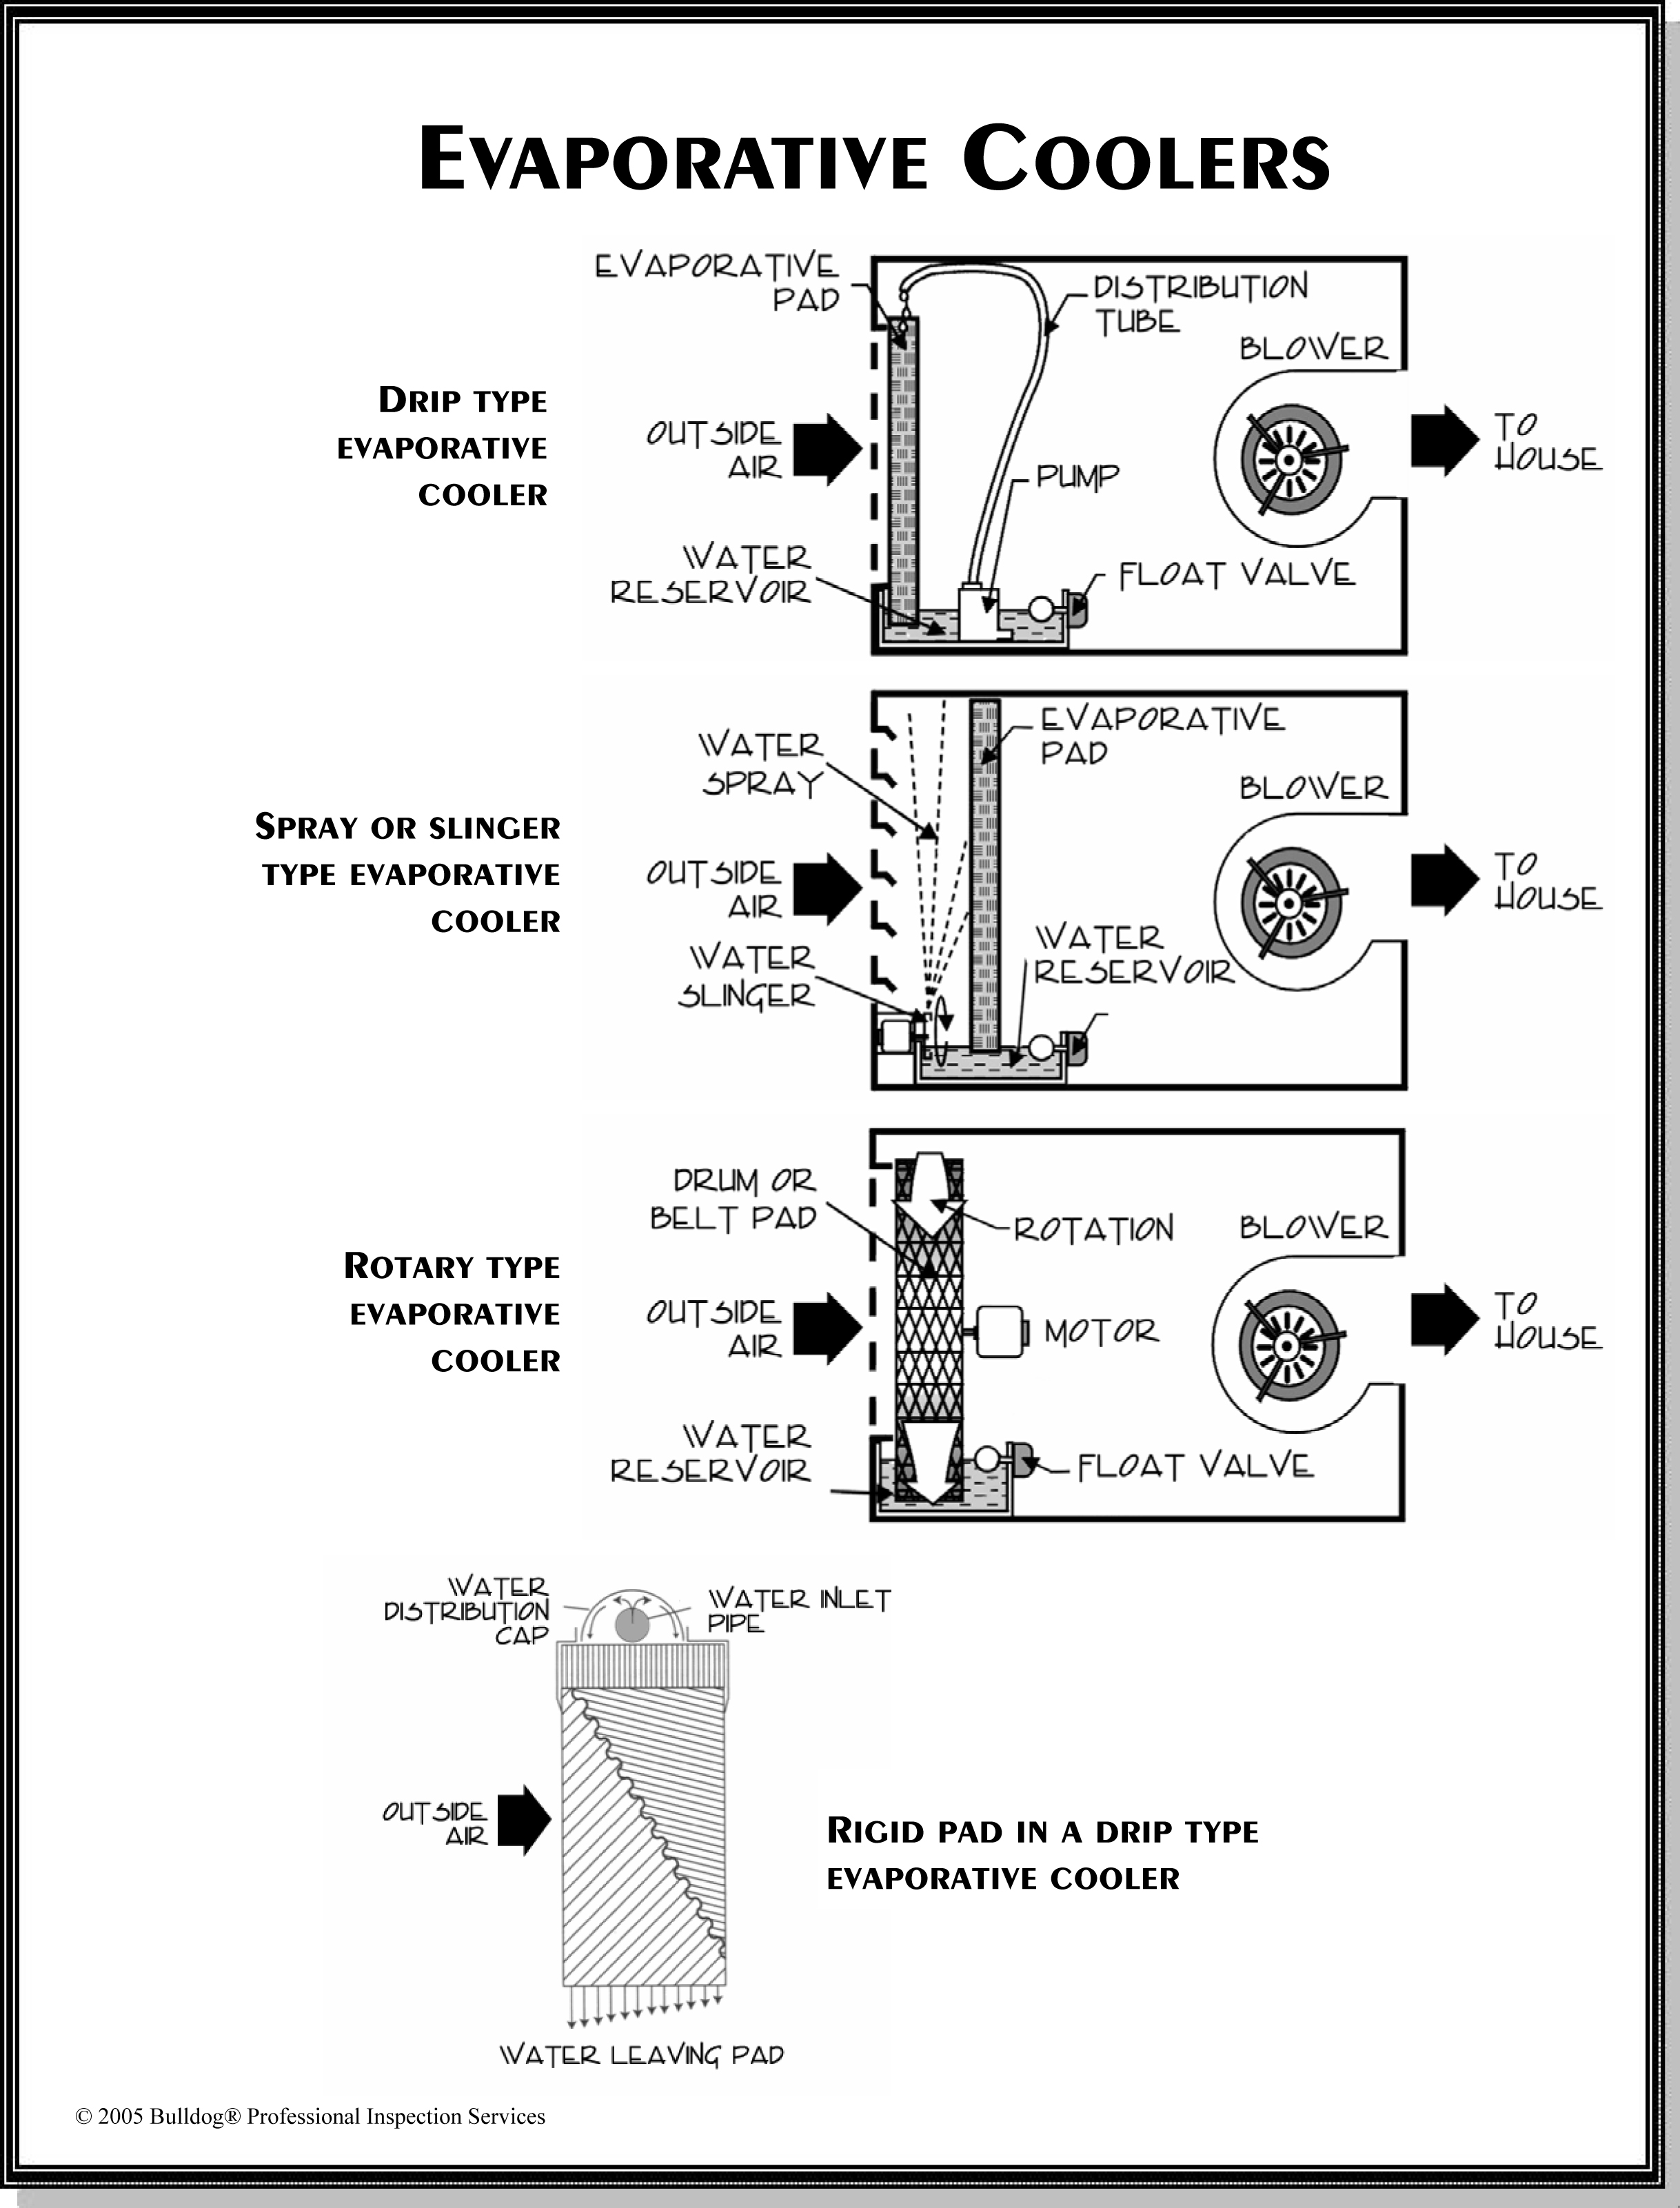 568b Wiring Diagram moreover Any furthermore Rj 48c T1 Wiring Diagram in addition 568b Wiring Diagram Public Domain likewise Cat5 Connection Wiring Diagram. on cat6 wiring diagram pdf